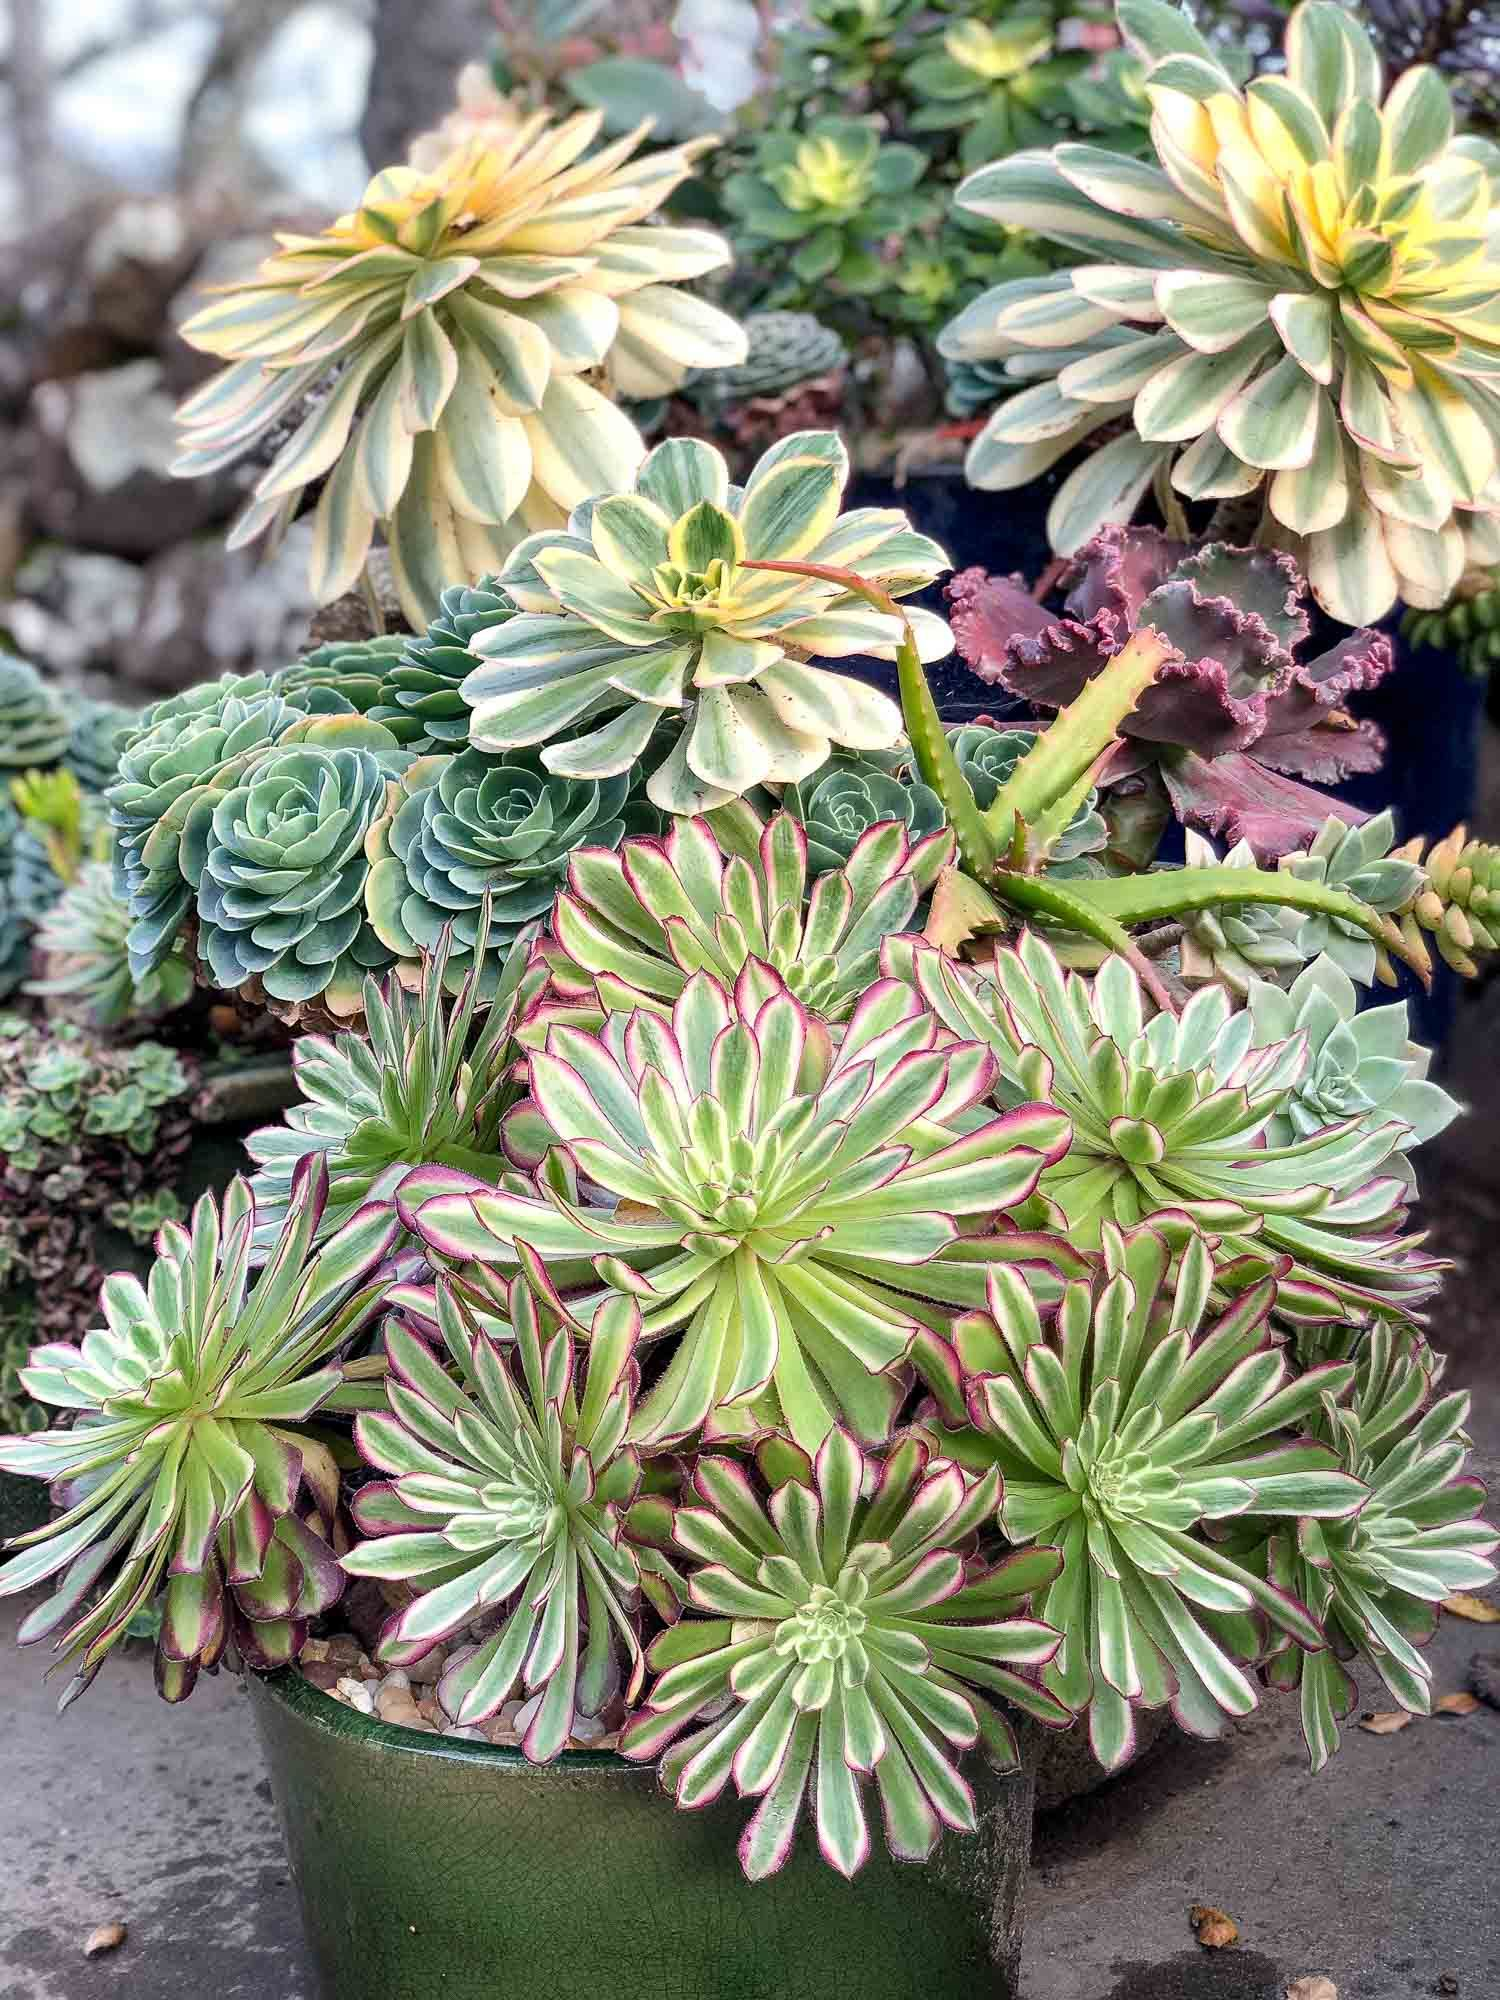 How to care for aeoniums mother plant succulents plants